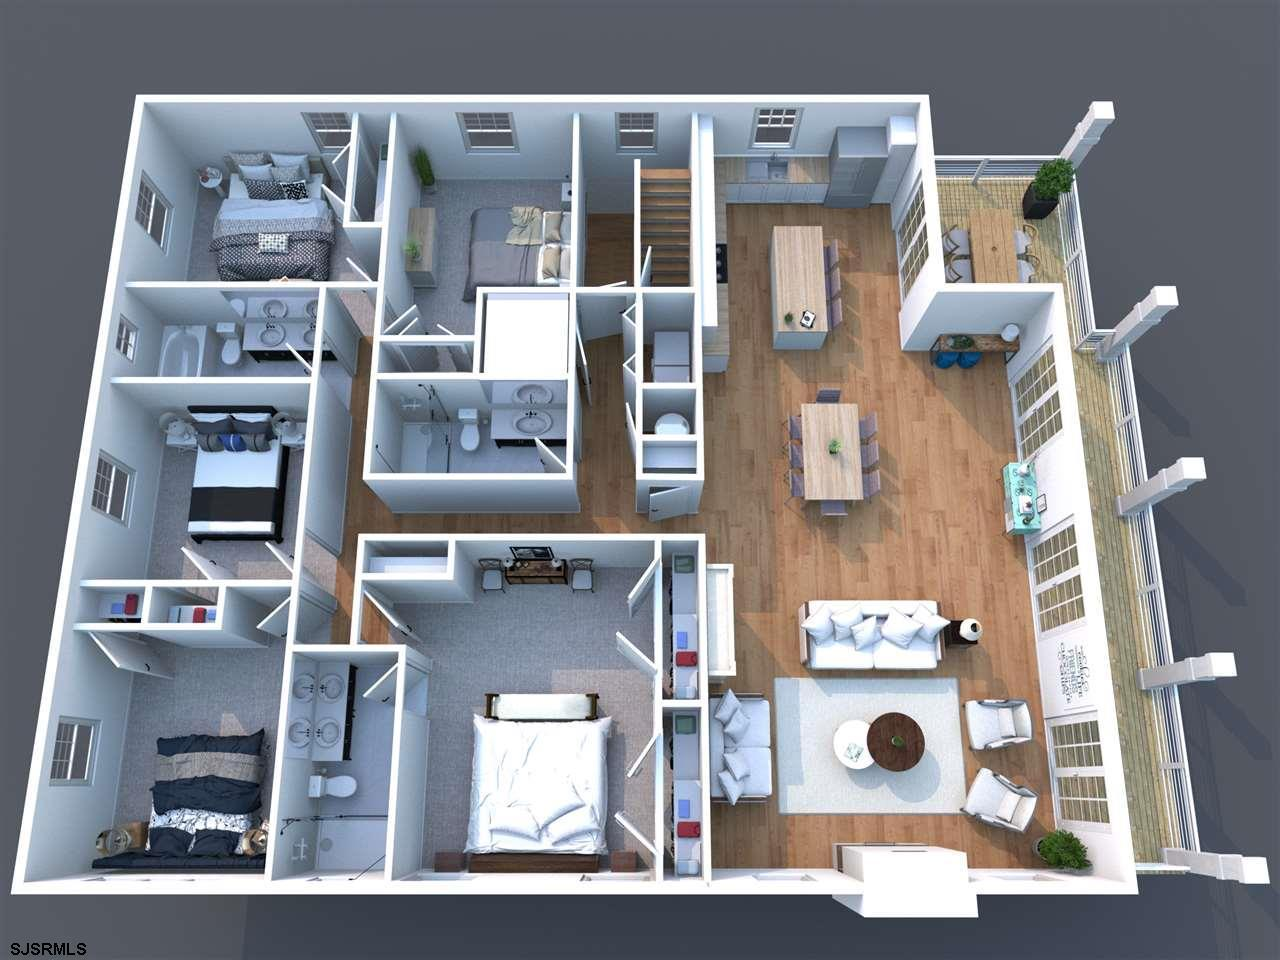 2121 Simpson 2nd Floor Rendering.jpeg